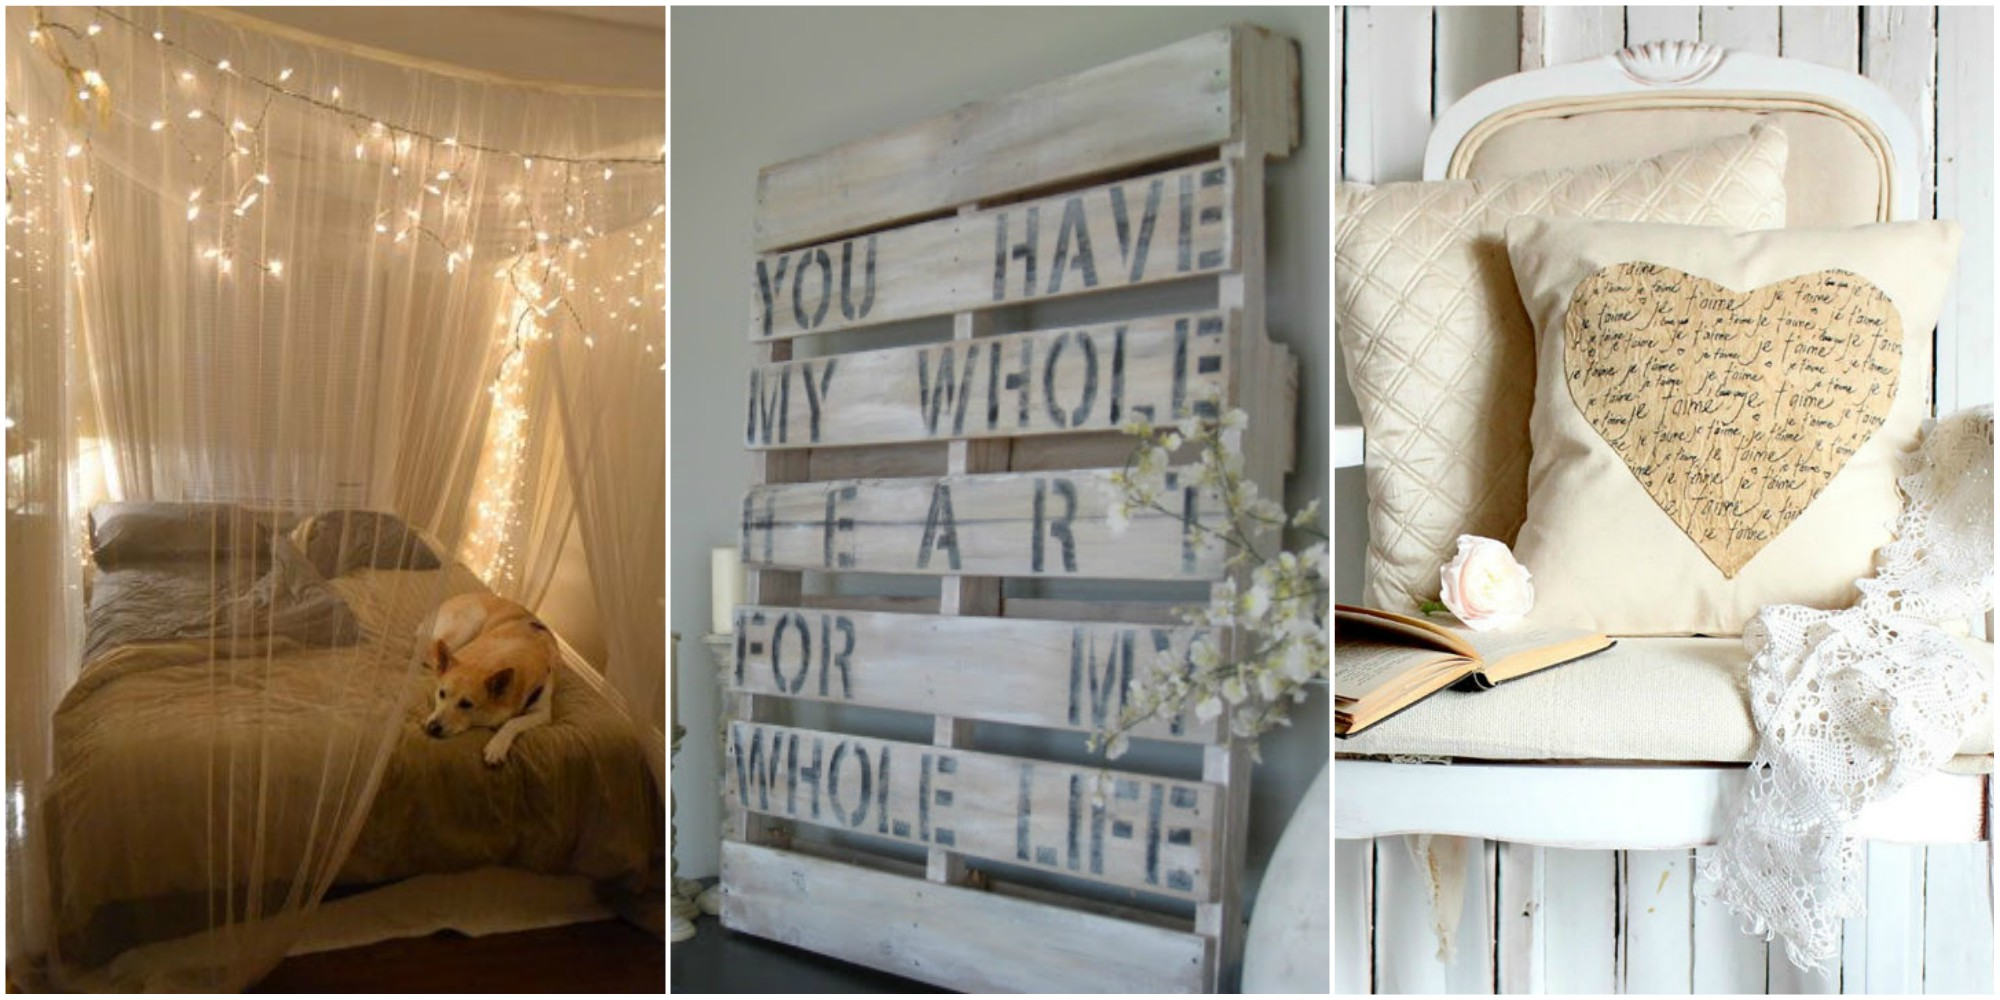 21 diy romantic bedroom decorating ideas country living for Decorating my bedroom ideas